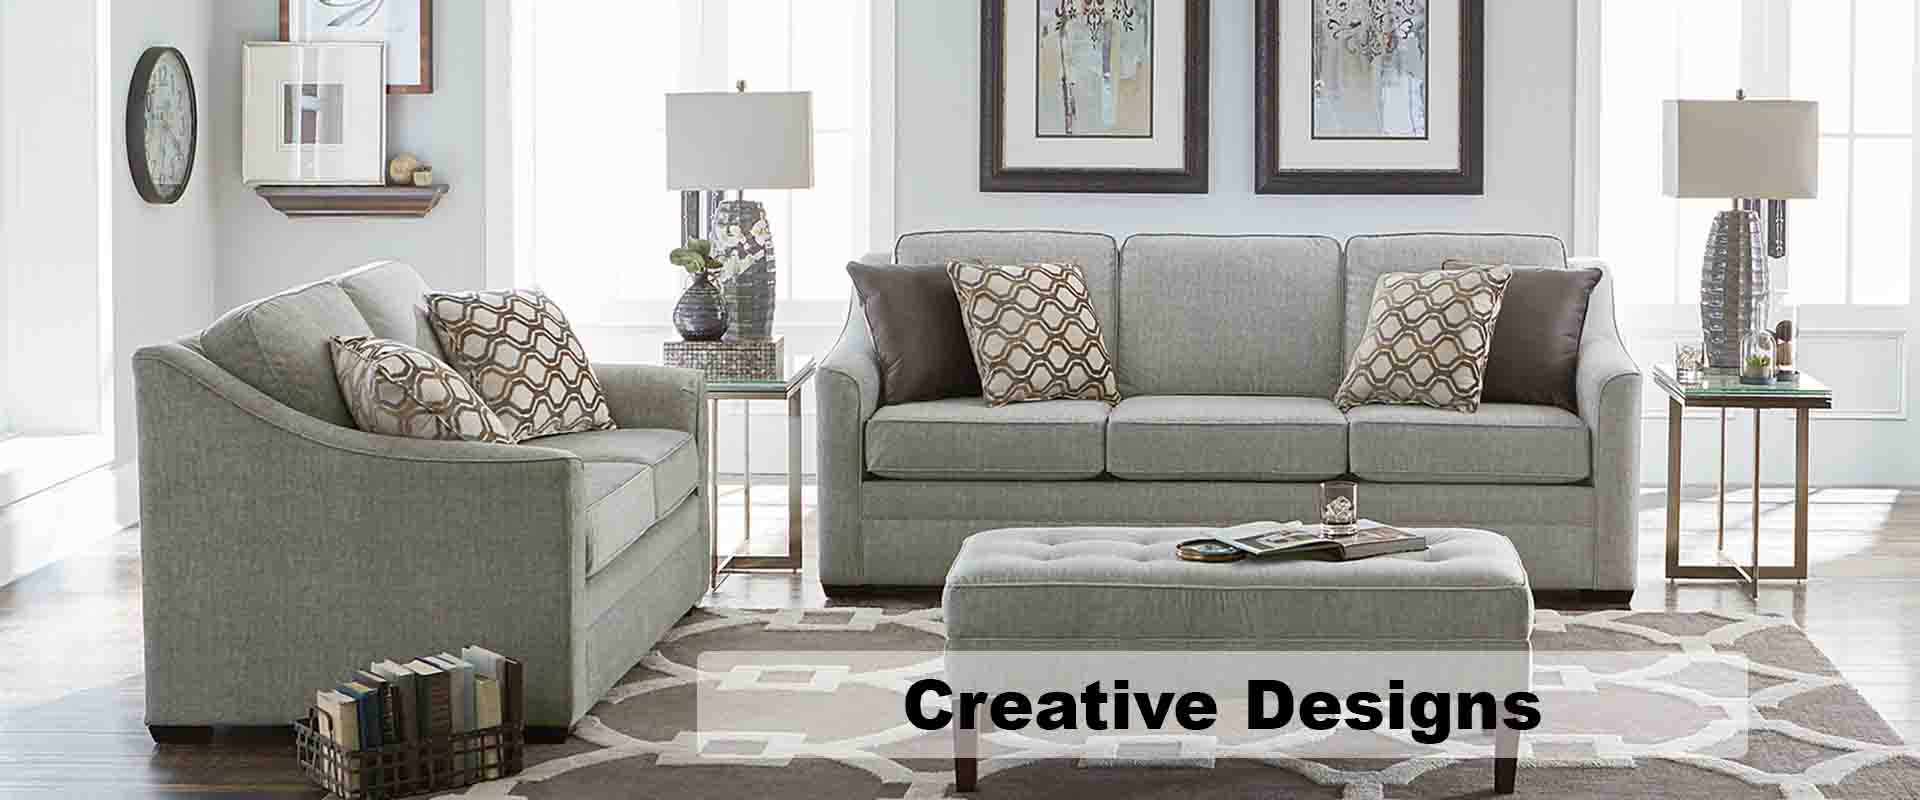 parkers furniture - greenwood sc - sofas, beds, tables